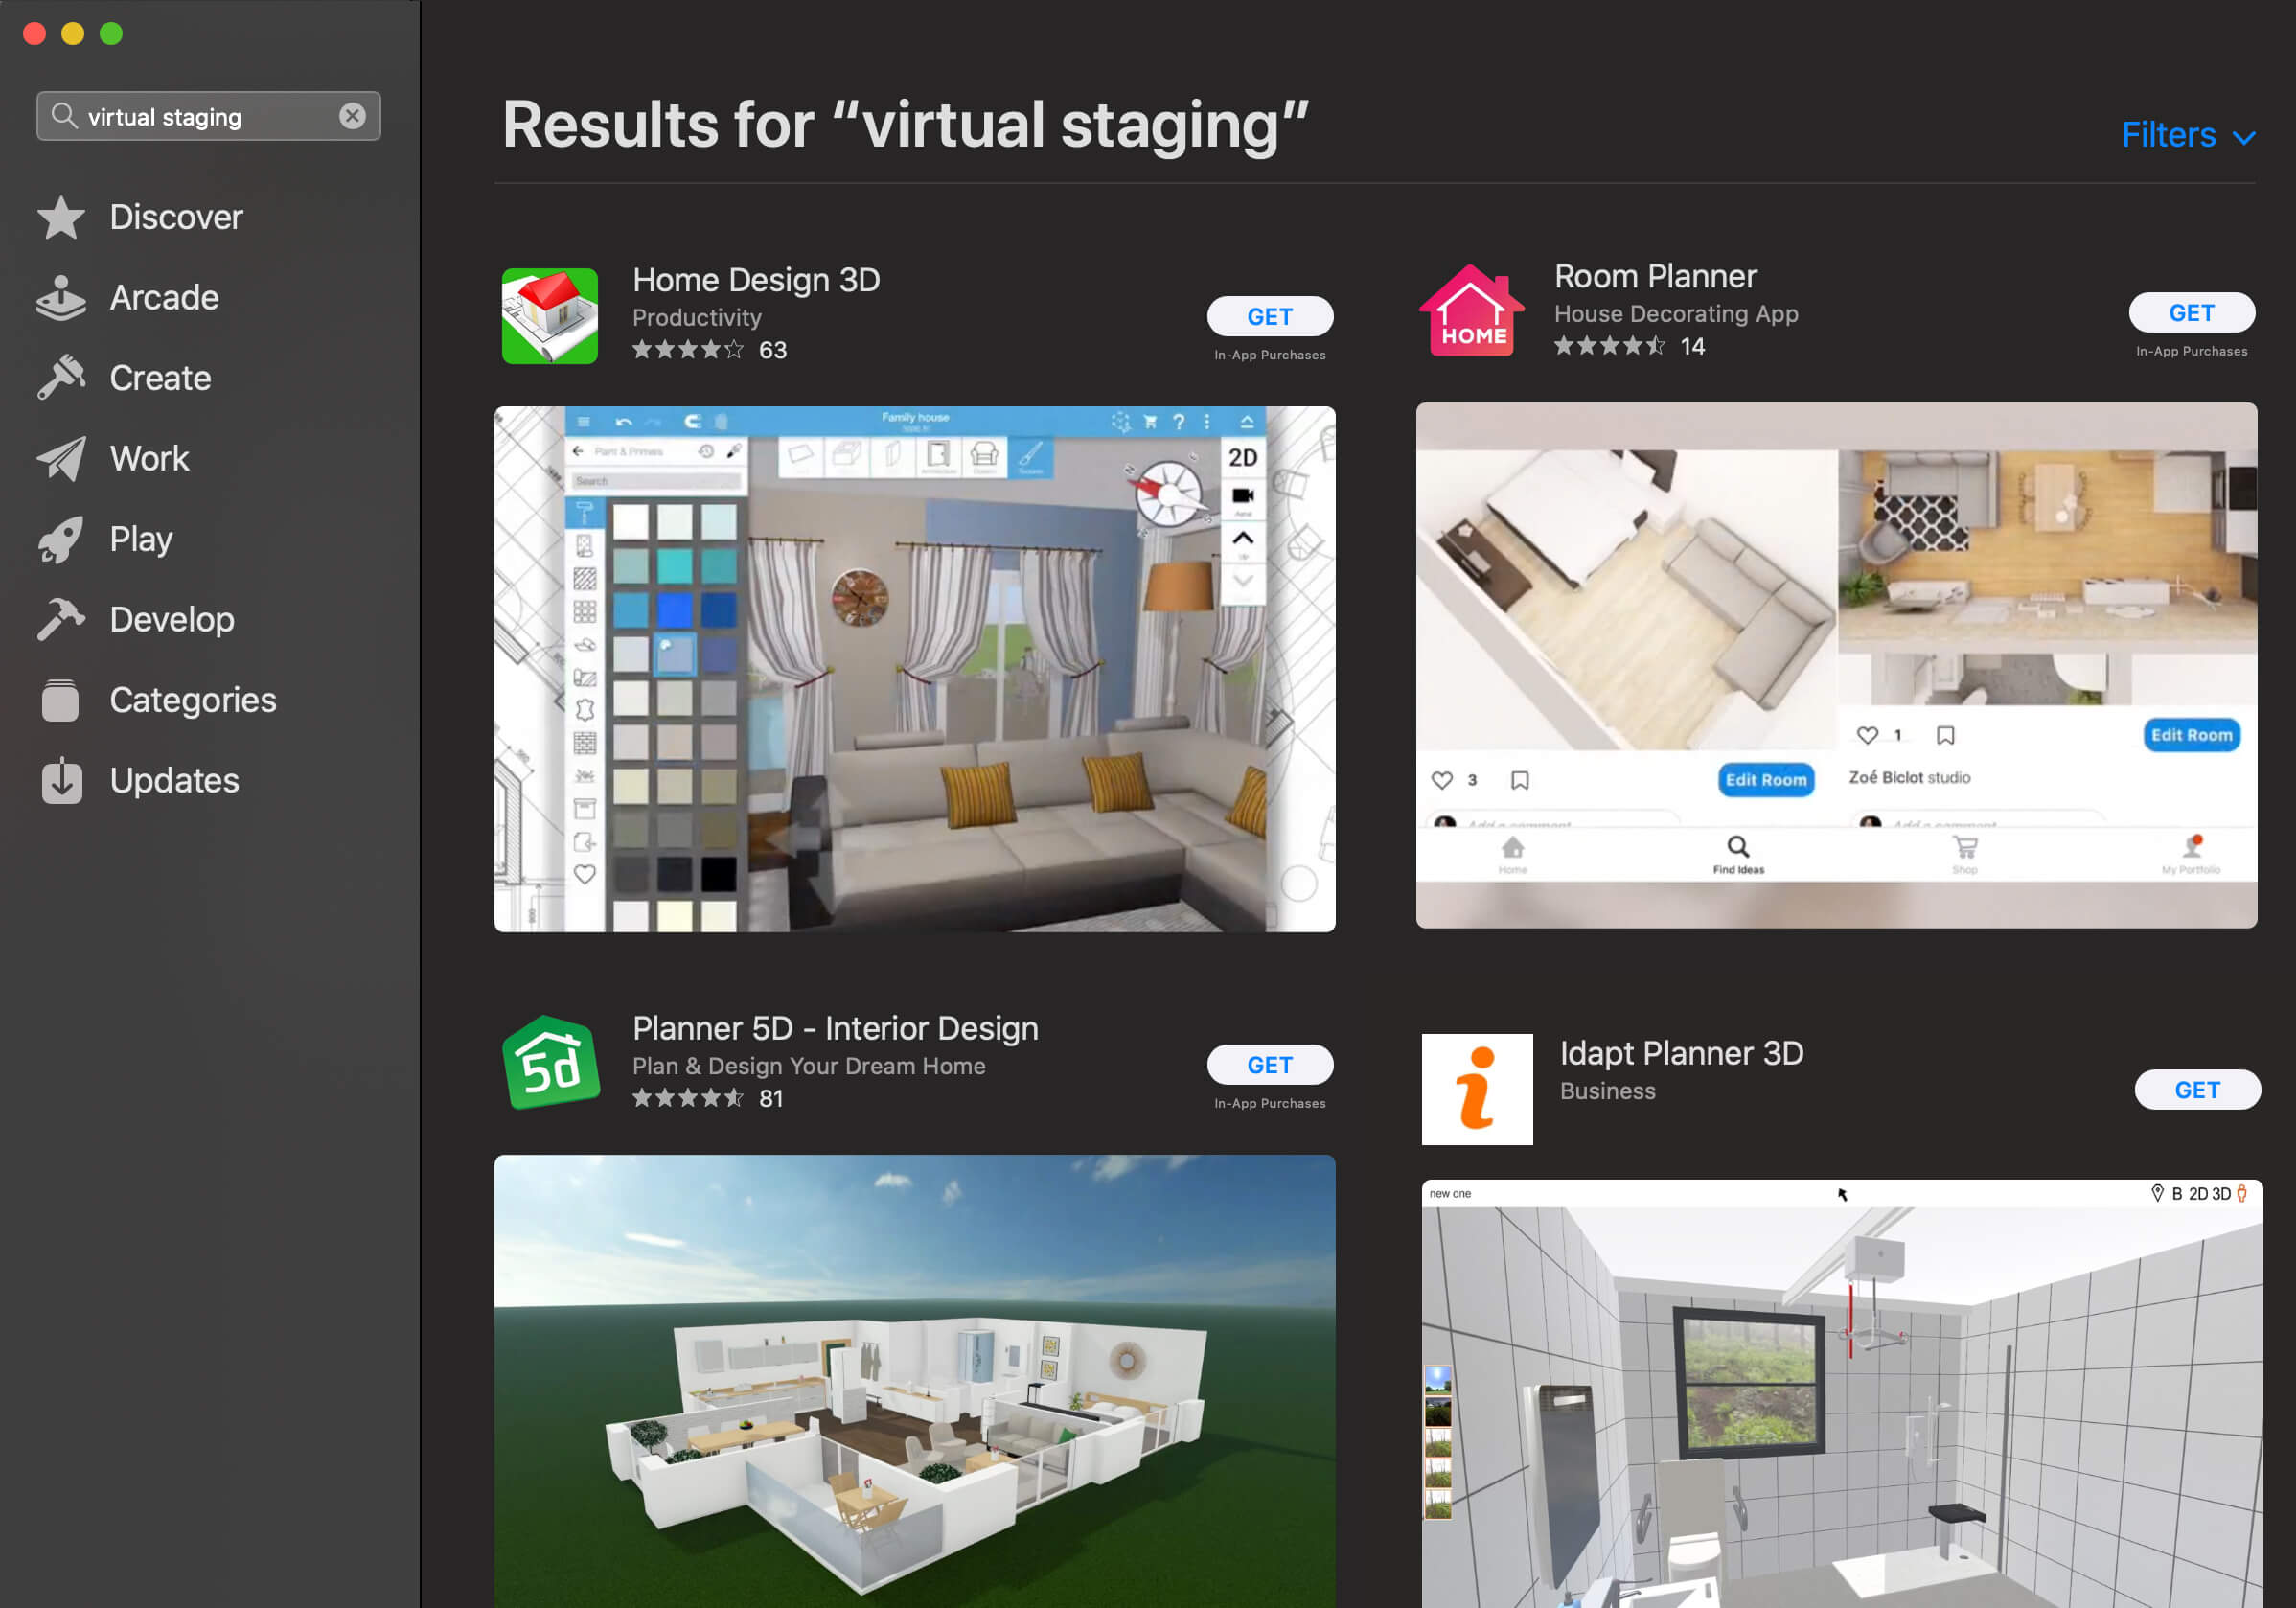 Can you do your own Virtual Staging?